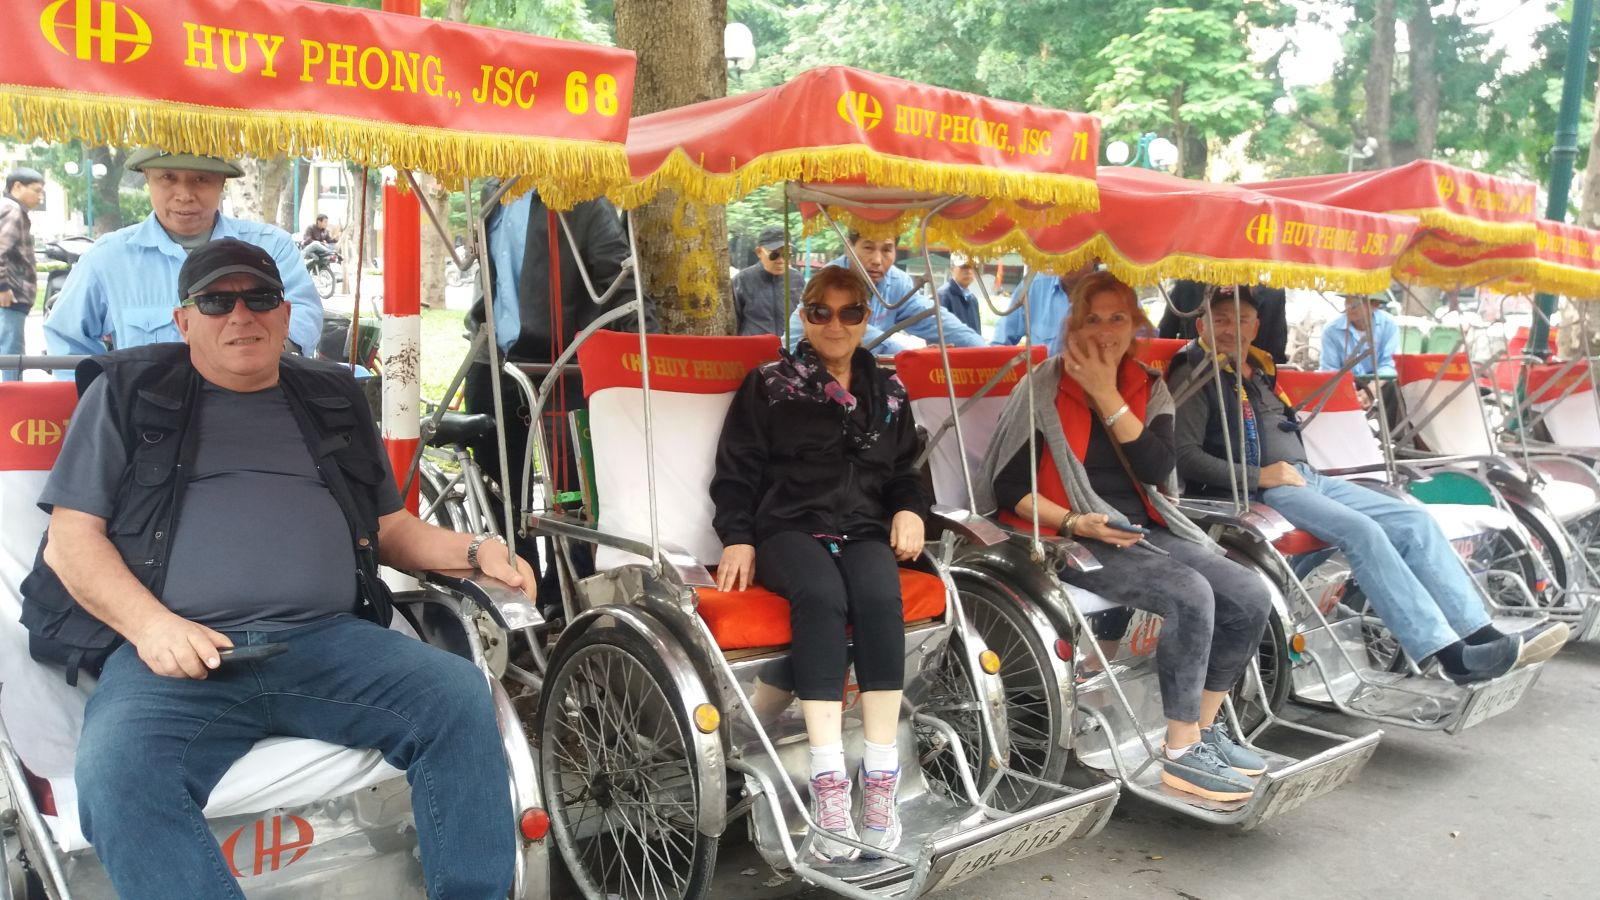 Hanoi city Tour -cyclo